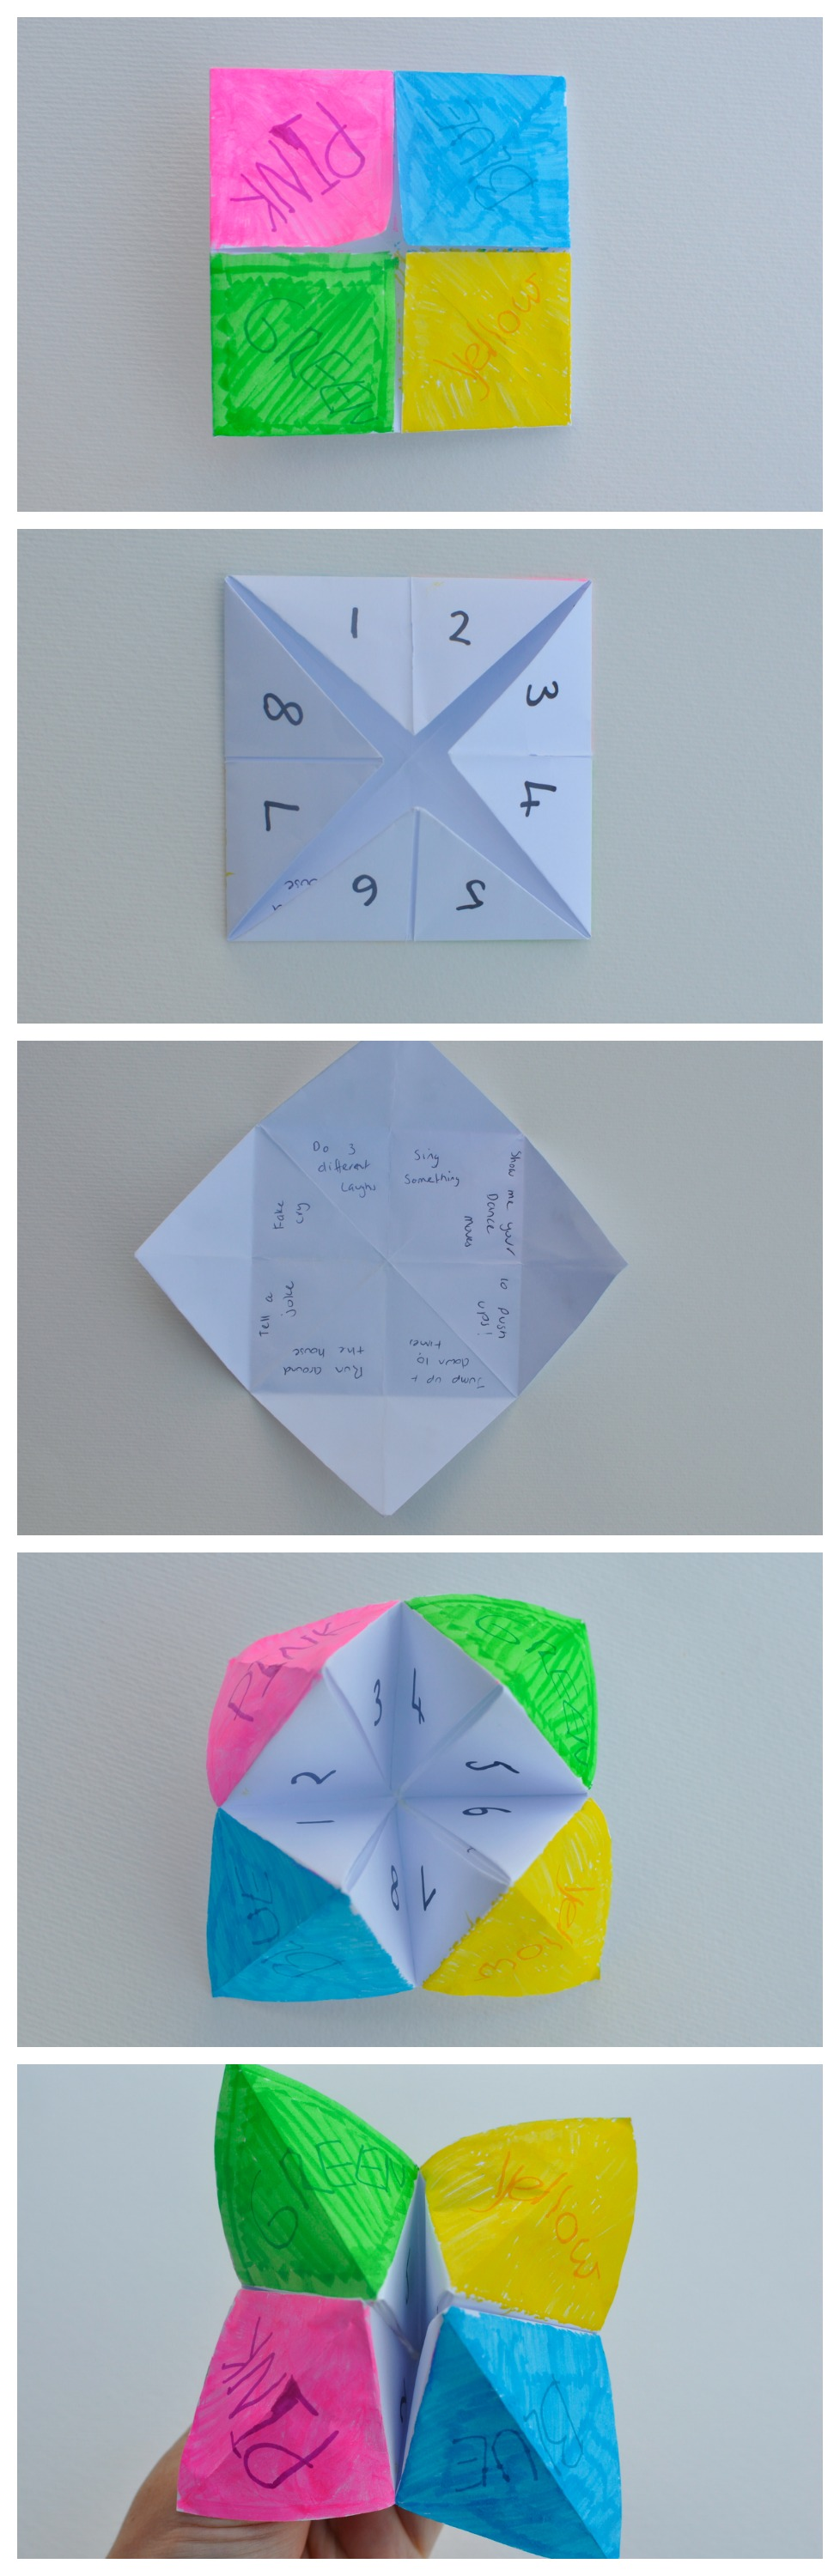 Chatterbox fun be a fun mum how to make a chatterbox and ideas for what to write inside jeuxipadfo Choice Image